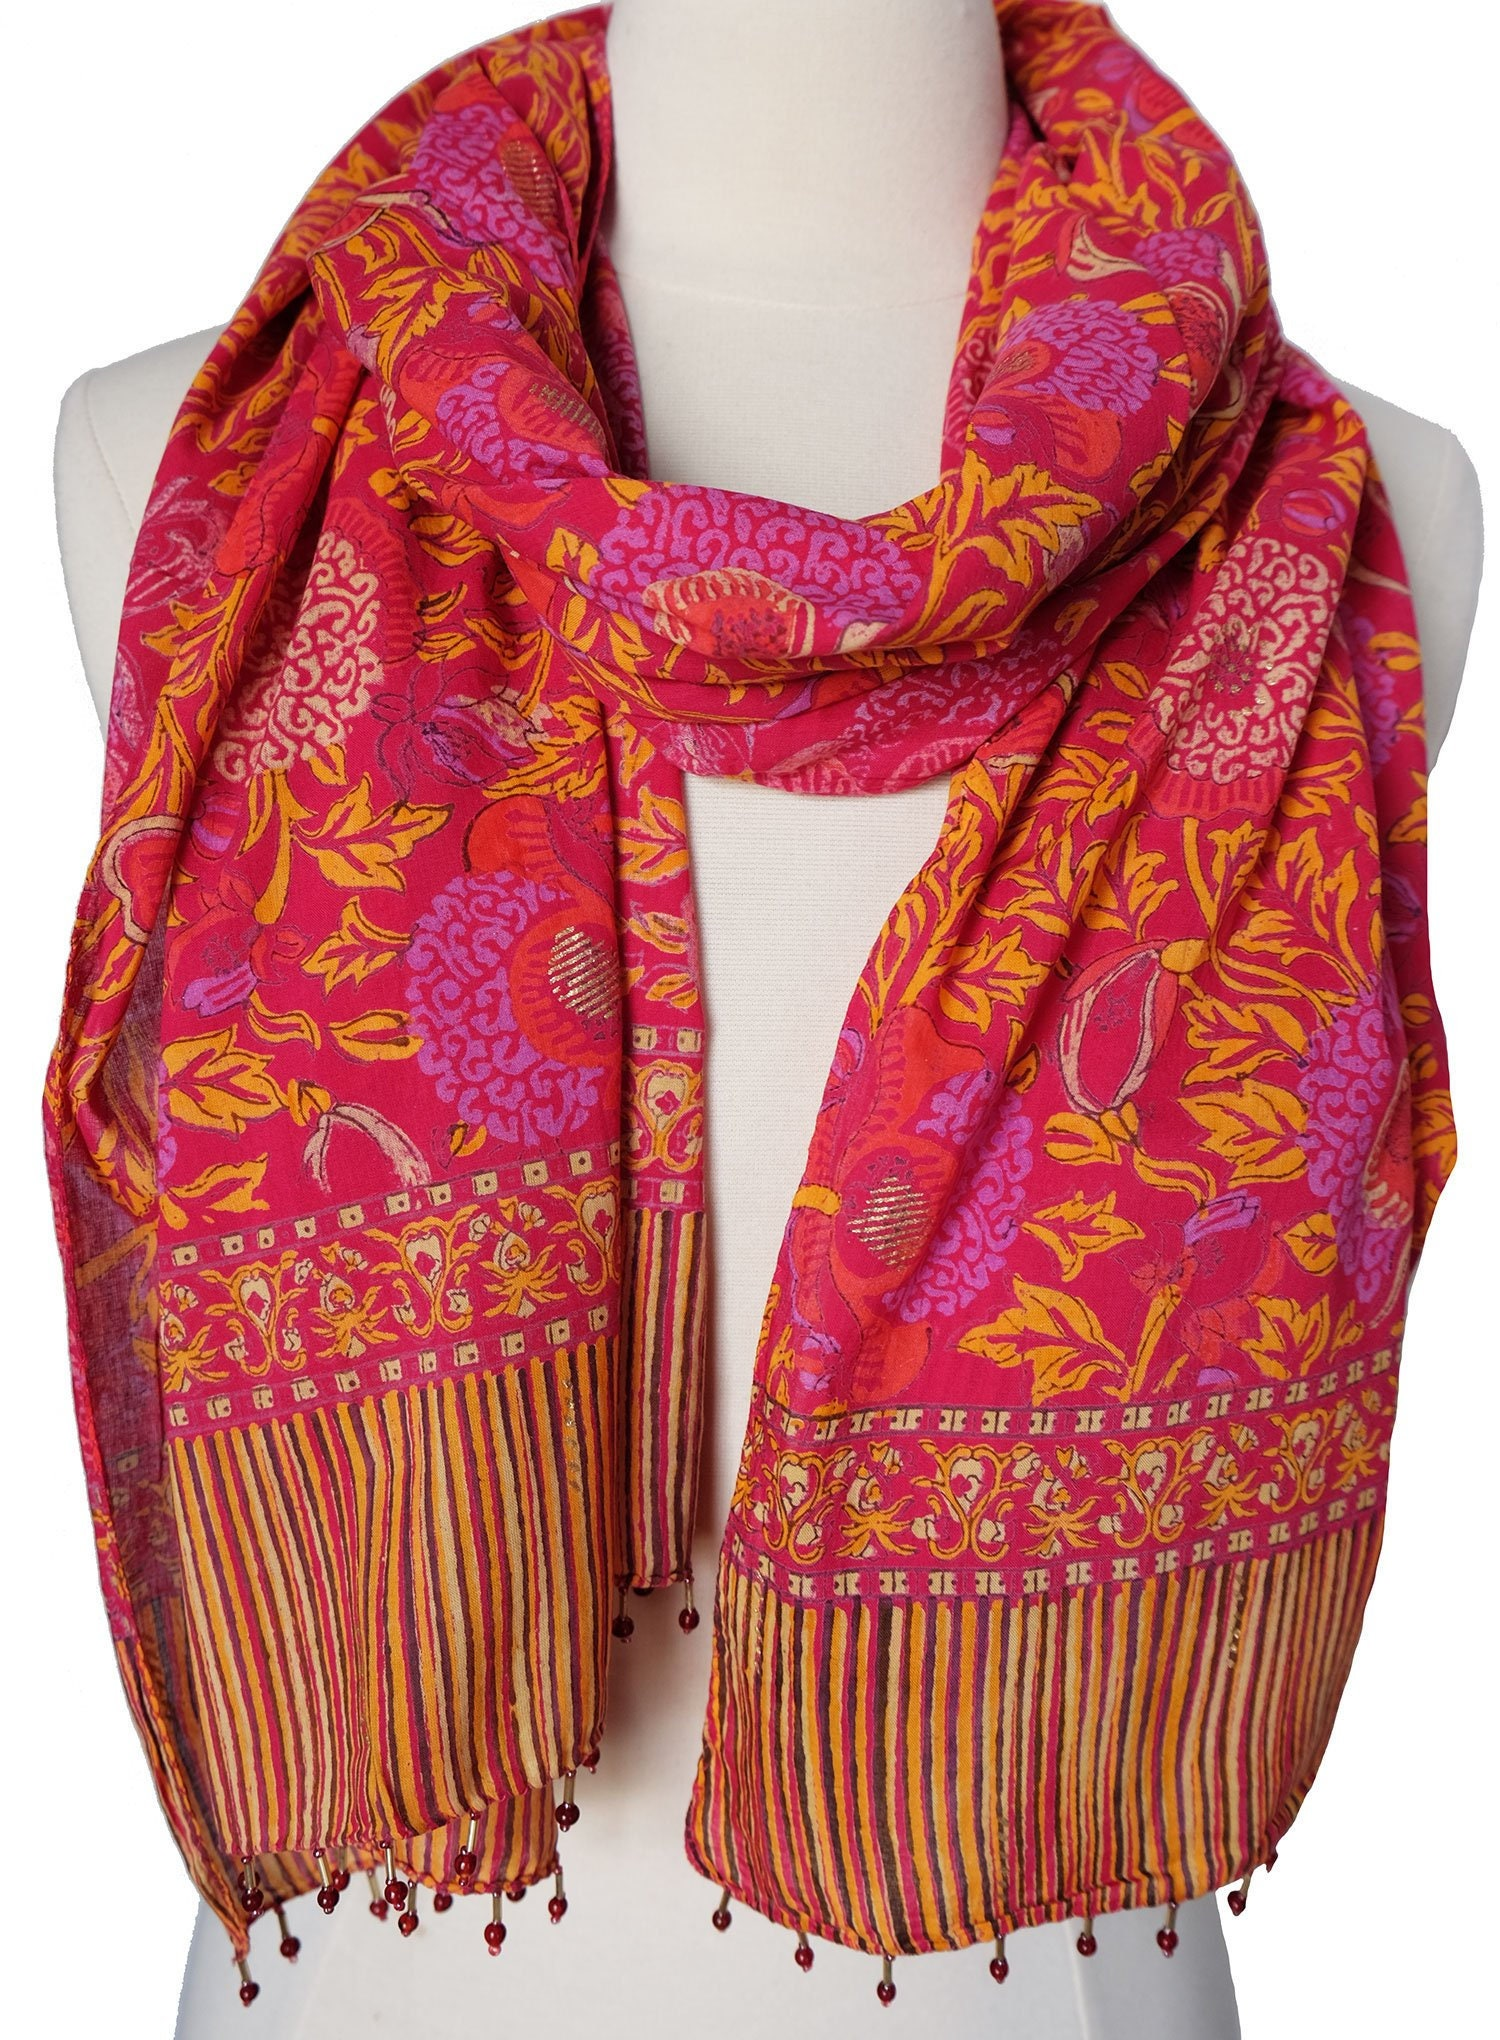 2e6487efd6a Hand Block Printed Scarf - Bali Flower Pink - 22 x 70 - 100% cotton